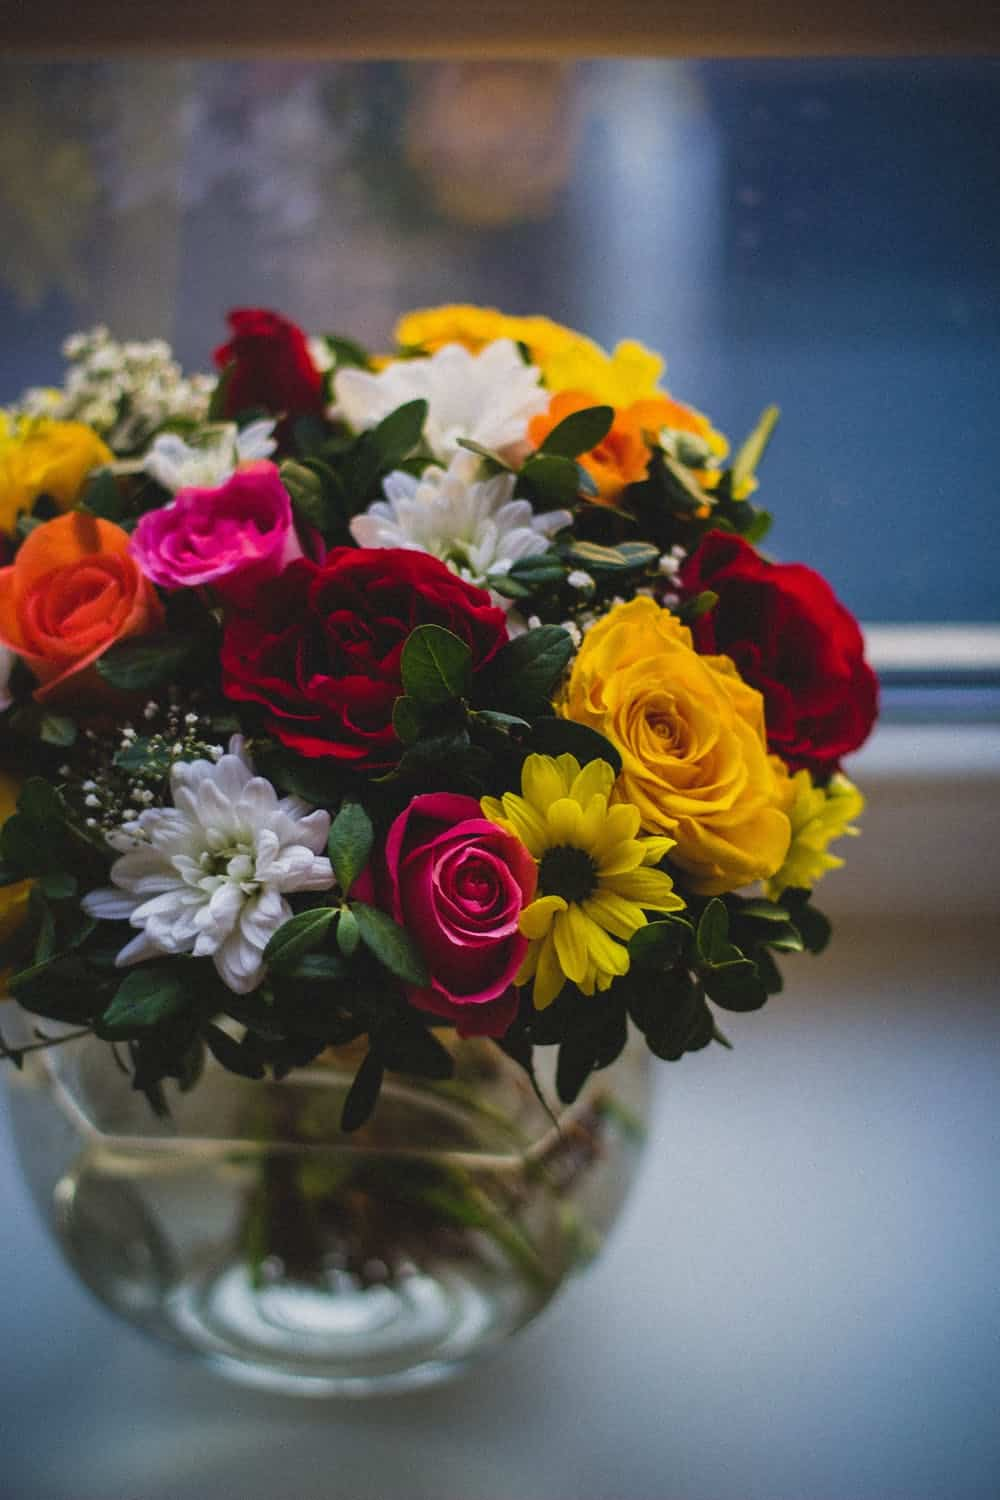 Dealing with Mother's Day as well as fertility issues